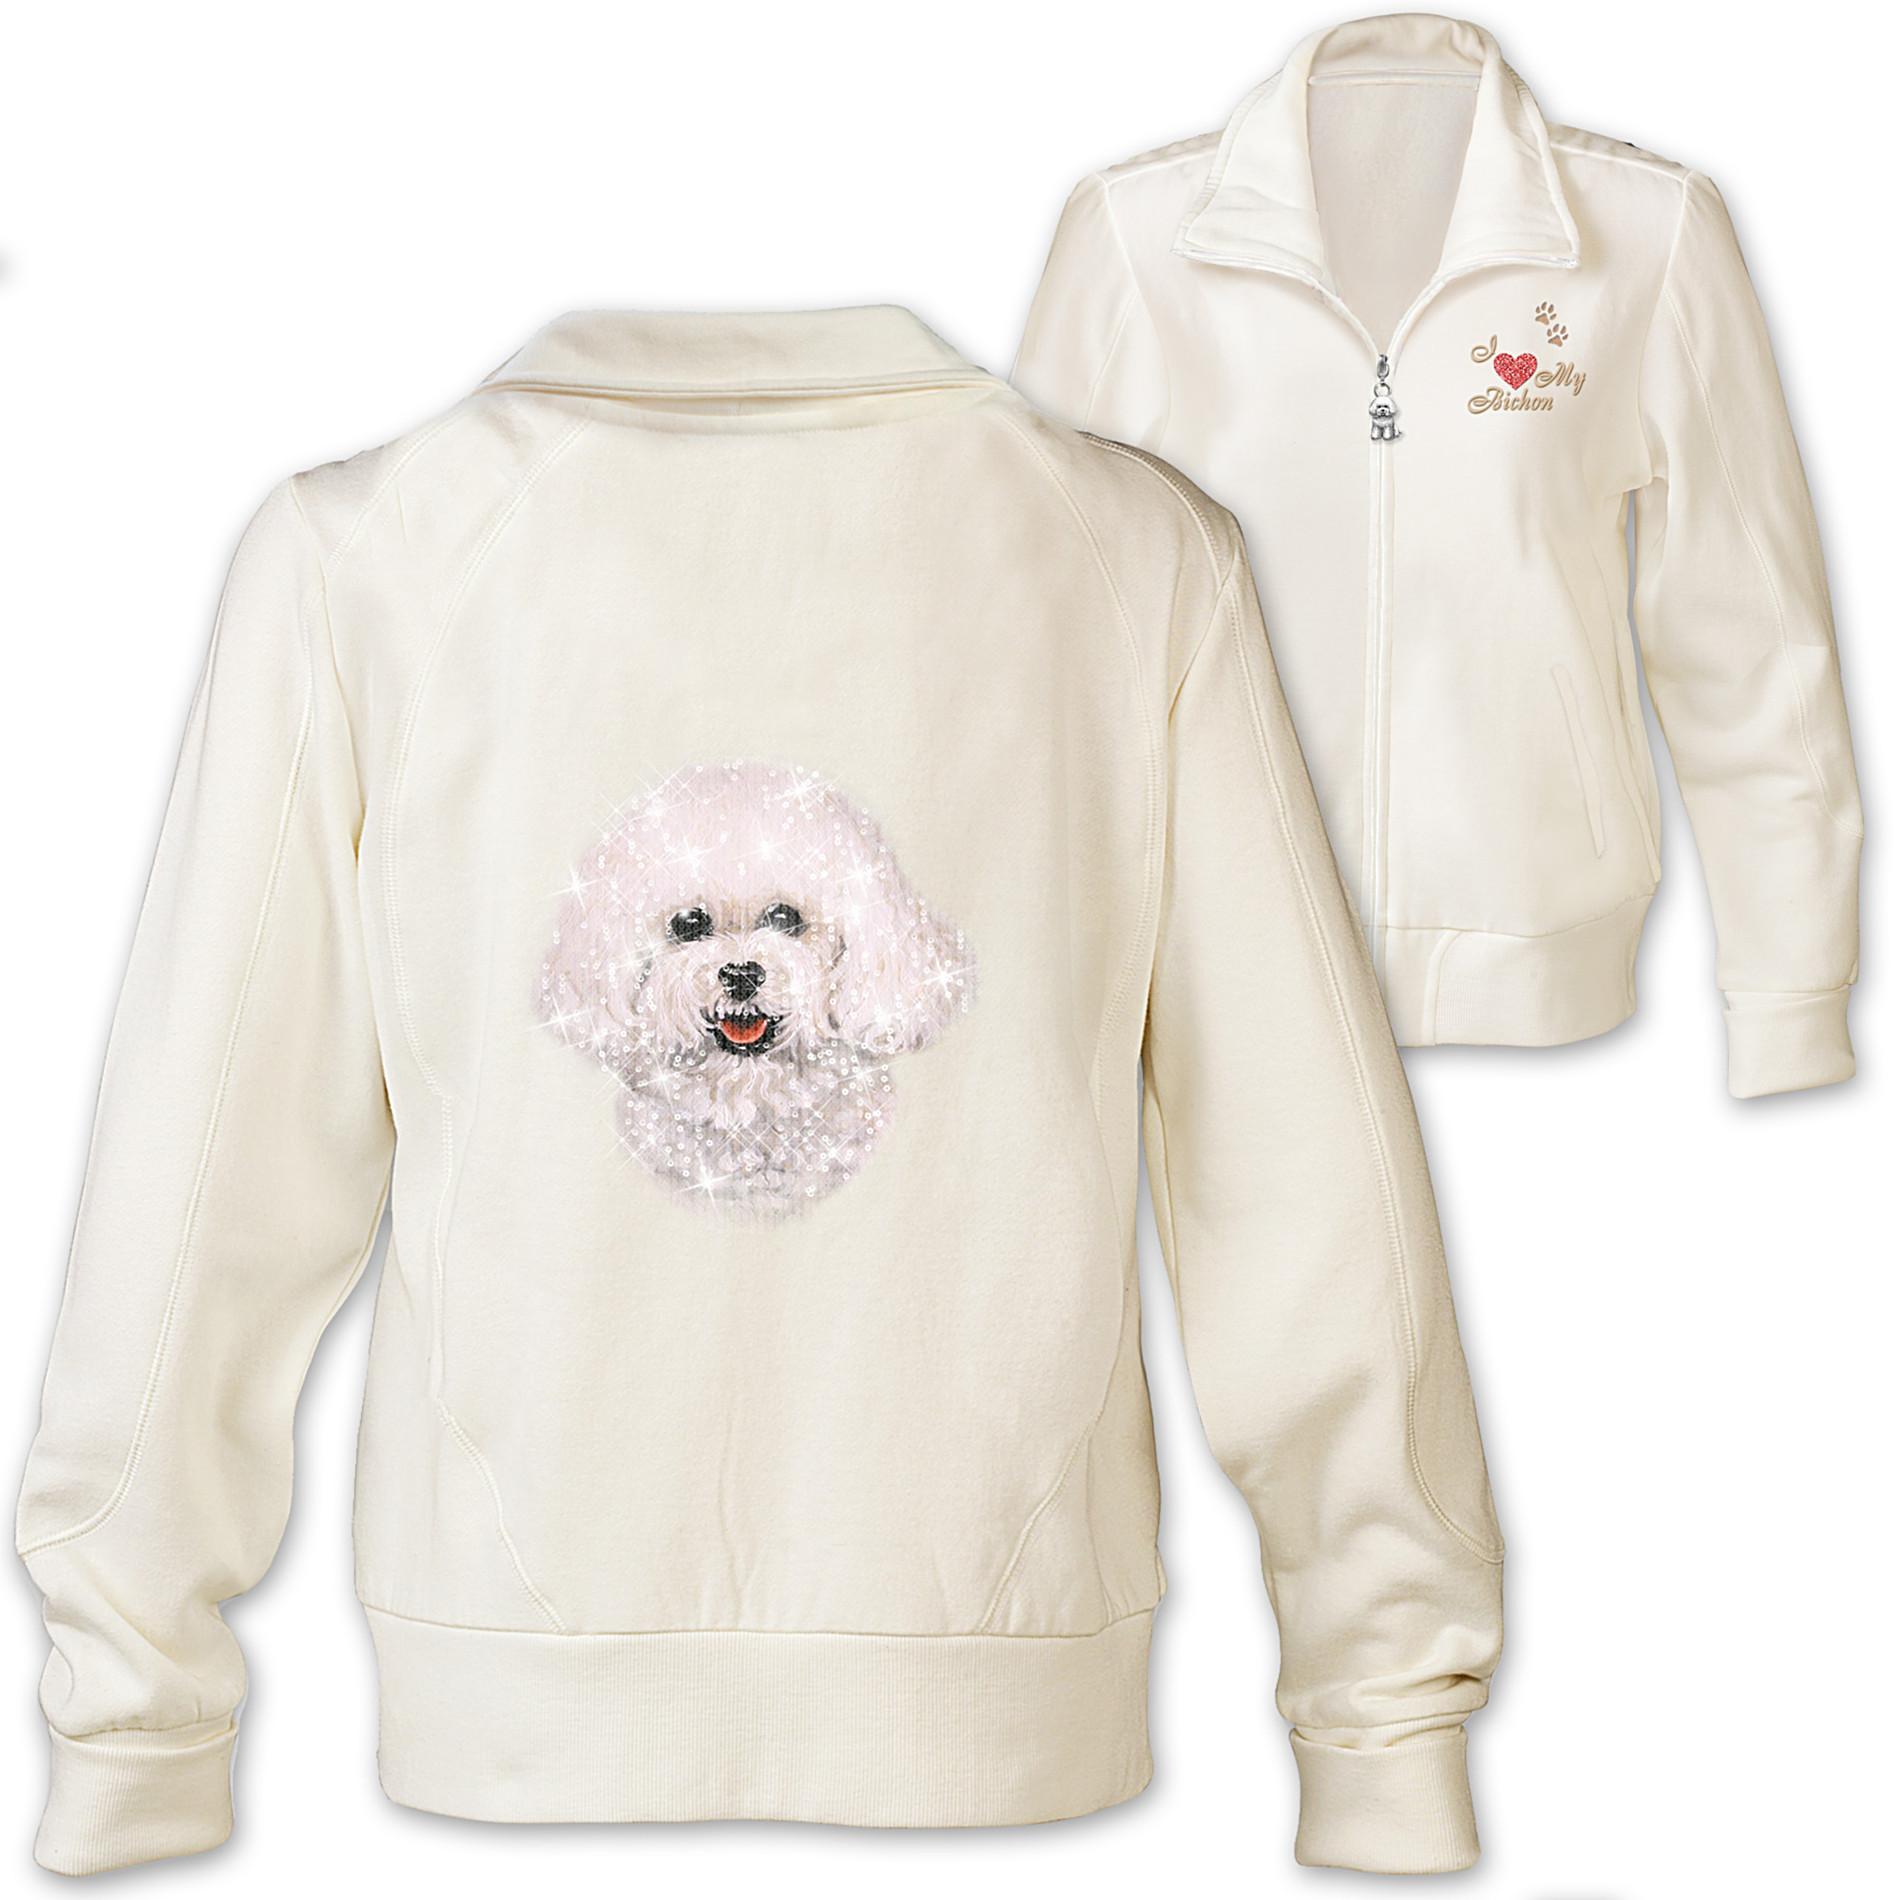 The Bradford Exchange Women's Jacket: Doggone Cute Bichon Women's Jacket at Sears.com